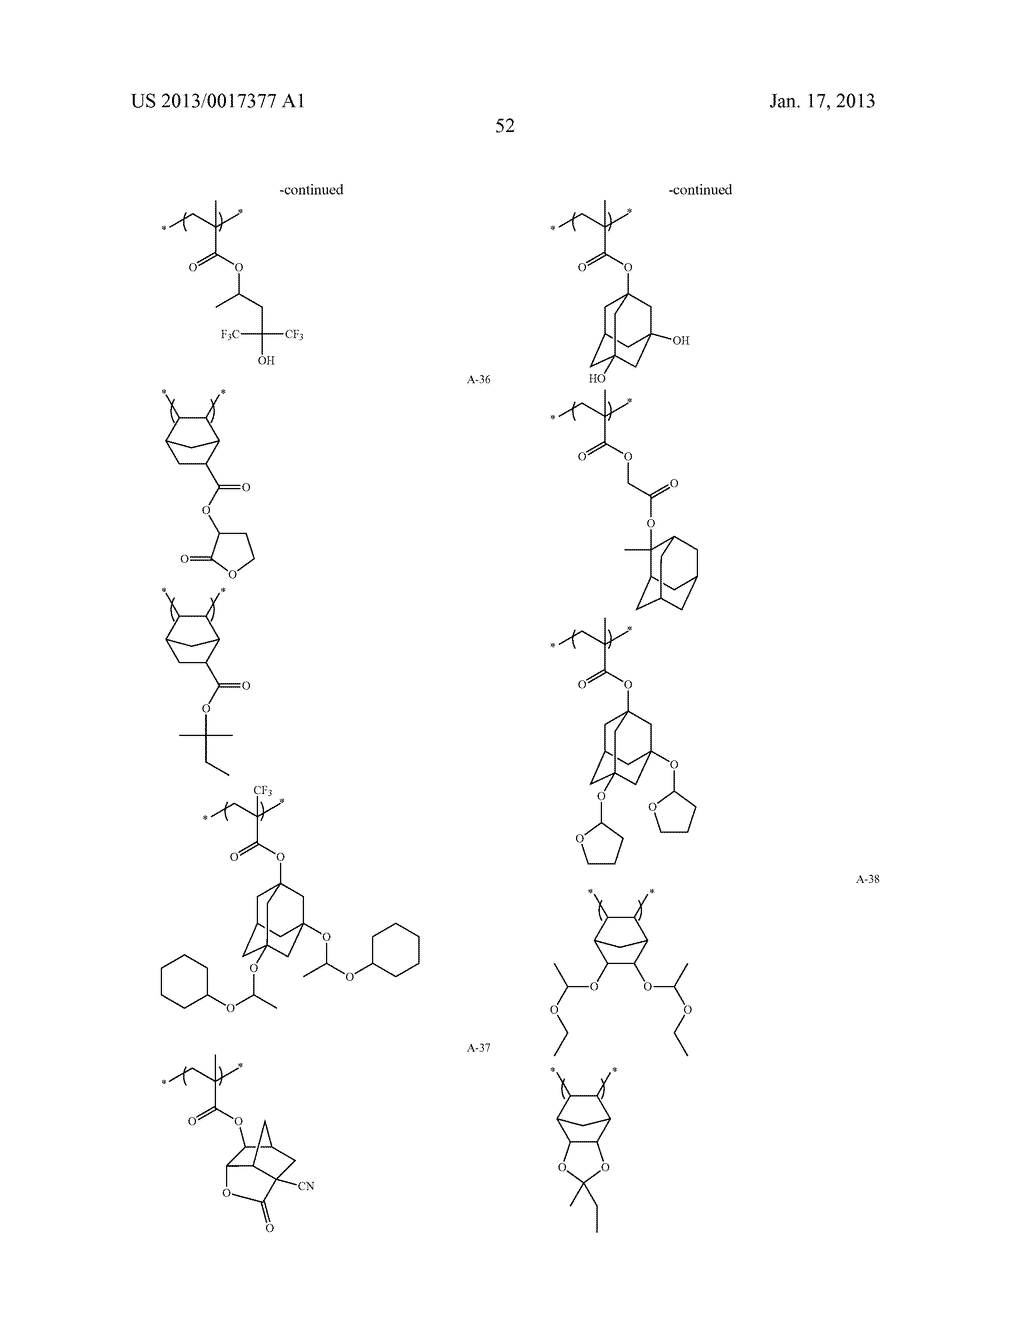 ACTINIC-RAY- OR RADIATION-SENSITIVE RESIN COMPOSITION AND METHOD OF     FORMING PATTERN USING THE SAMEAANM Kataoka; ShoheiAACI ShizuokaAACO JPAAGP Kataoka; Shohei Shizuoka JPAANM Iwato; KaoruAACI ShizuokaAACO JPAAGP Iwato; Kaoru Shizuoka JPAANM Kamimura; SouAACI ShizuokaAACO JPAAGP Kamimura; Sou Shizuoka JPAANM Tsuchihashi; ToruAACI ShizuokaAACO JPAAGP Tsuchihashi; Toru Shizuoka JPAANM Enomoto; YuichiroAACI ShizuokaAACO JPAAGP Enomoto; Yuichiro Shizuoka JPAANM Fujii; KanaAACI ShizuokaAACO JPAAGP Fujii; Kana Shizuoka JPAANM Mizutani; KazuyoshiAACI ShizuokaAACO JPAAGP Mizutani; Kazuyoshi Shizuoka JPAANM Tarutani; ShinjiAACI ShizuokaAACO JPAAGP Tarutani; Shinji Shizuoka JPAANM Kato; KeitaAACI ShizuokaAACO JPAAGP Kato; Keita Shizuoka JP - diagram, schematic, and image 53